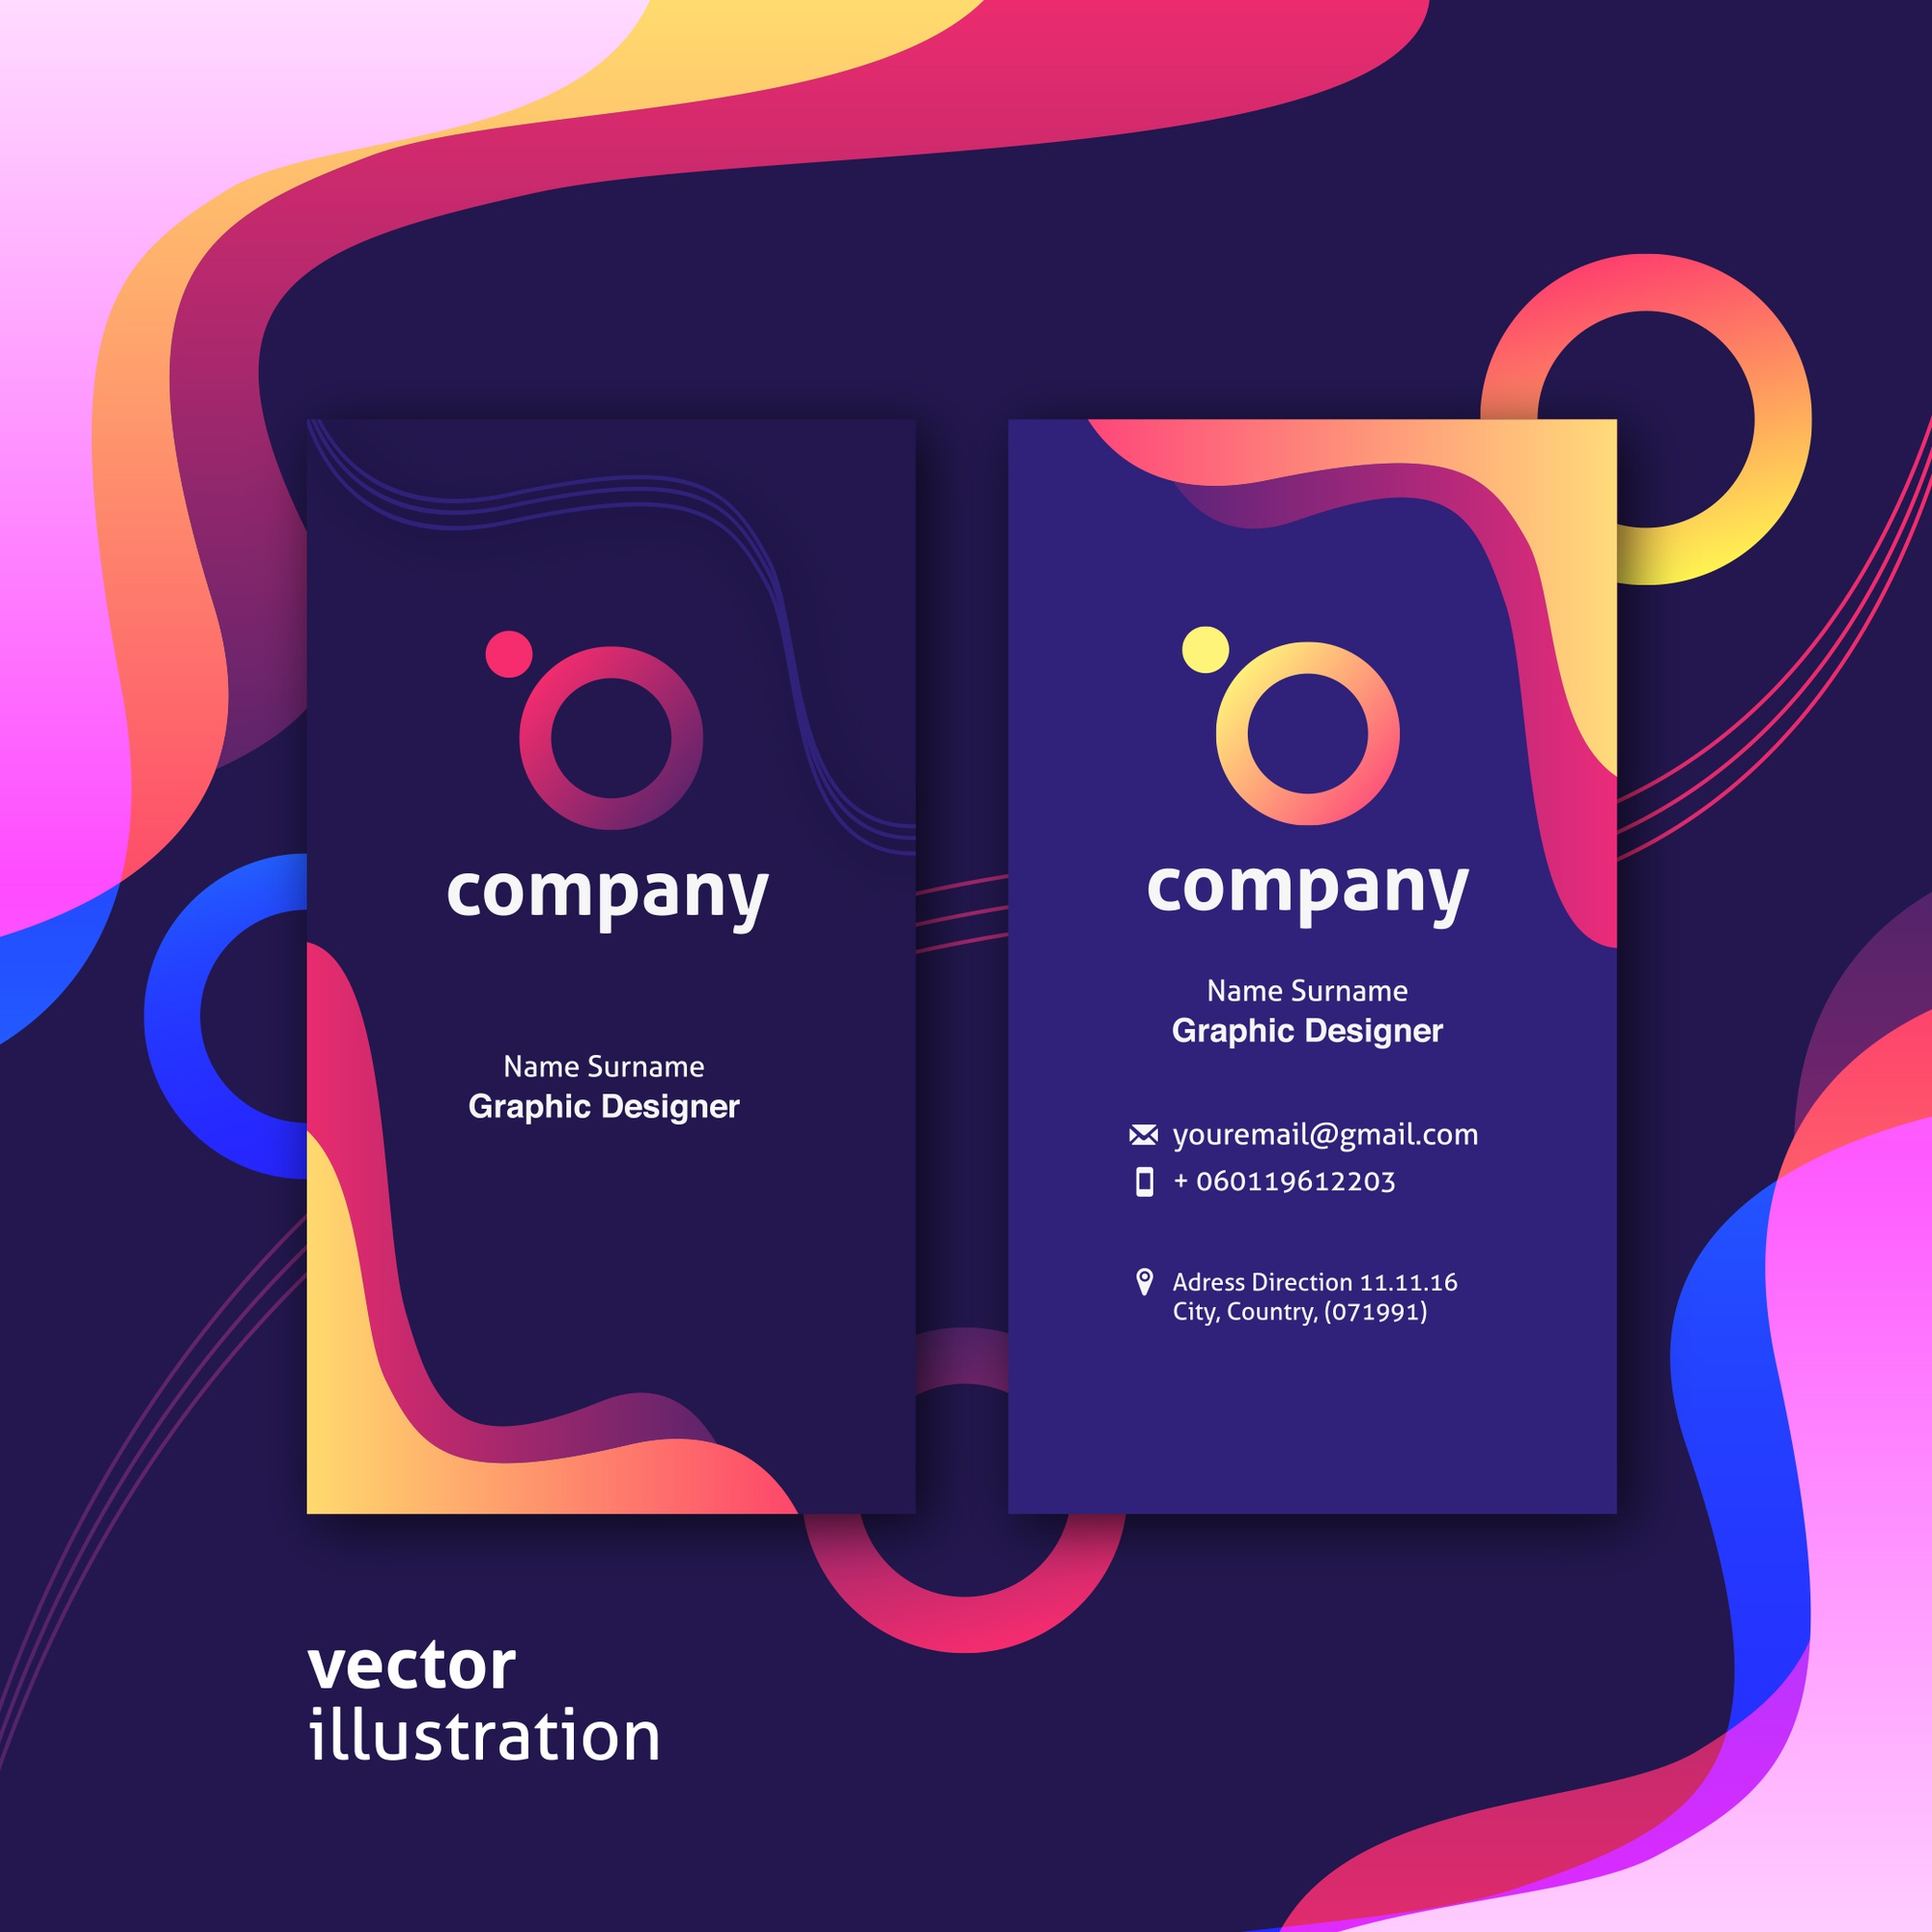 Colorful presentation cards with liquid shapes